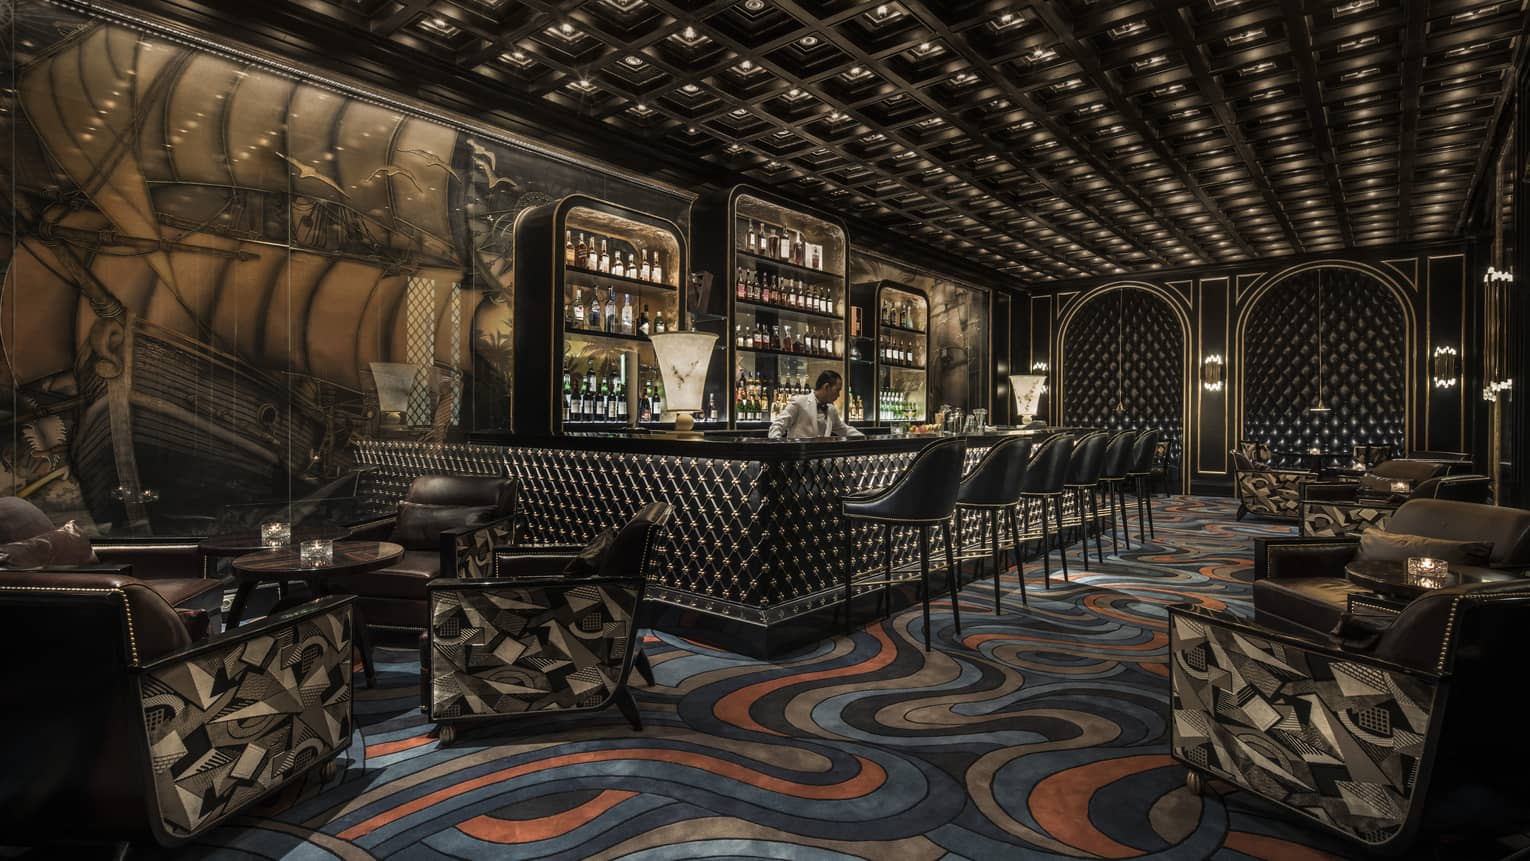 Nautilus Bar with blue-and-orange ocean-like swirled carpet, ship mural on wall, bartender behind bar